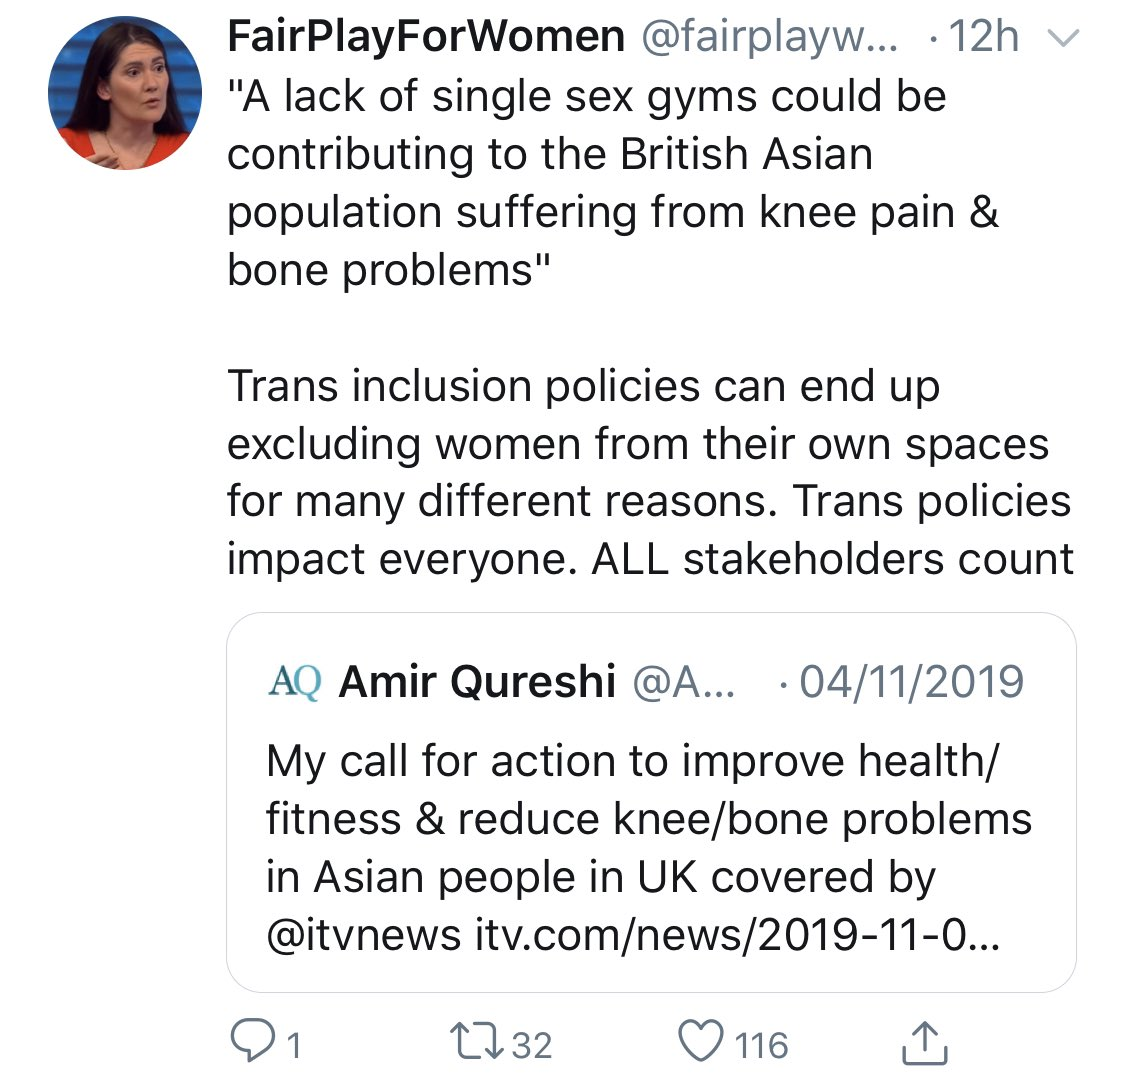 Holy cow! Trans people are now being blamed for the joint pains of the British Asian community!!! 😳🤯 You couldn't make this up!!! How can ANYONE take this tinfoil-hat, obsessively trans-hostile group seriously??? They'll literally weaponise ANYTHING against trans people!